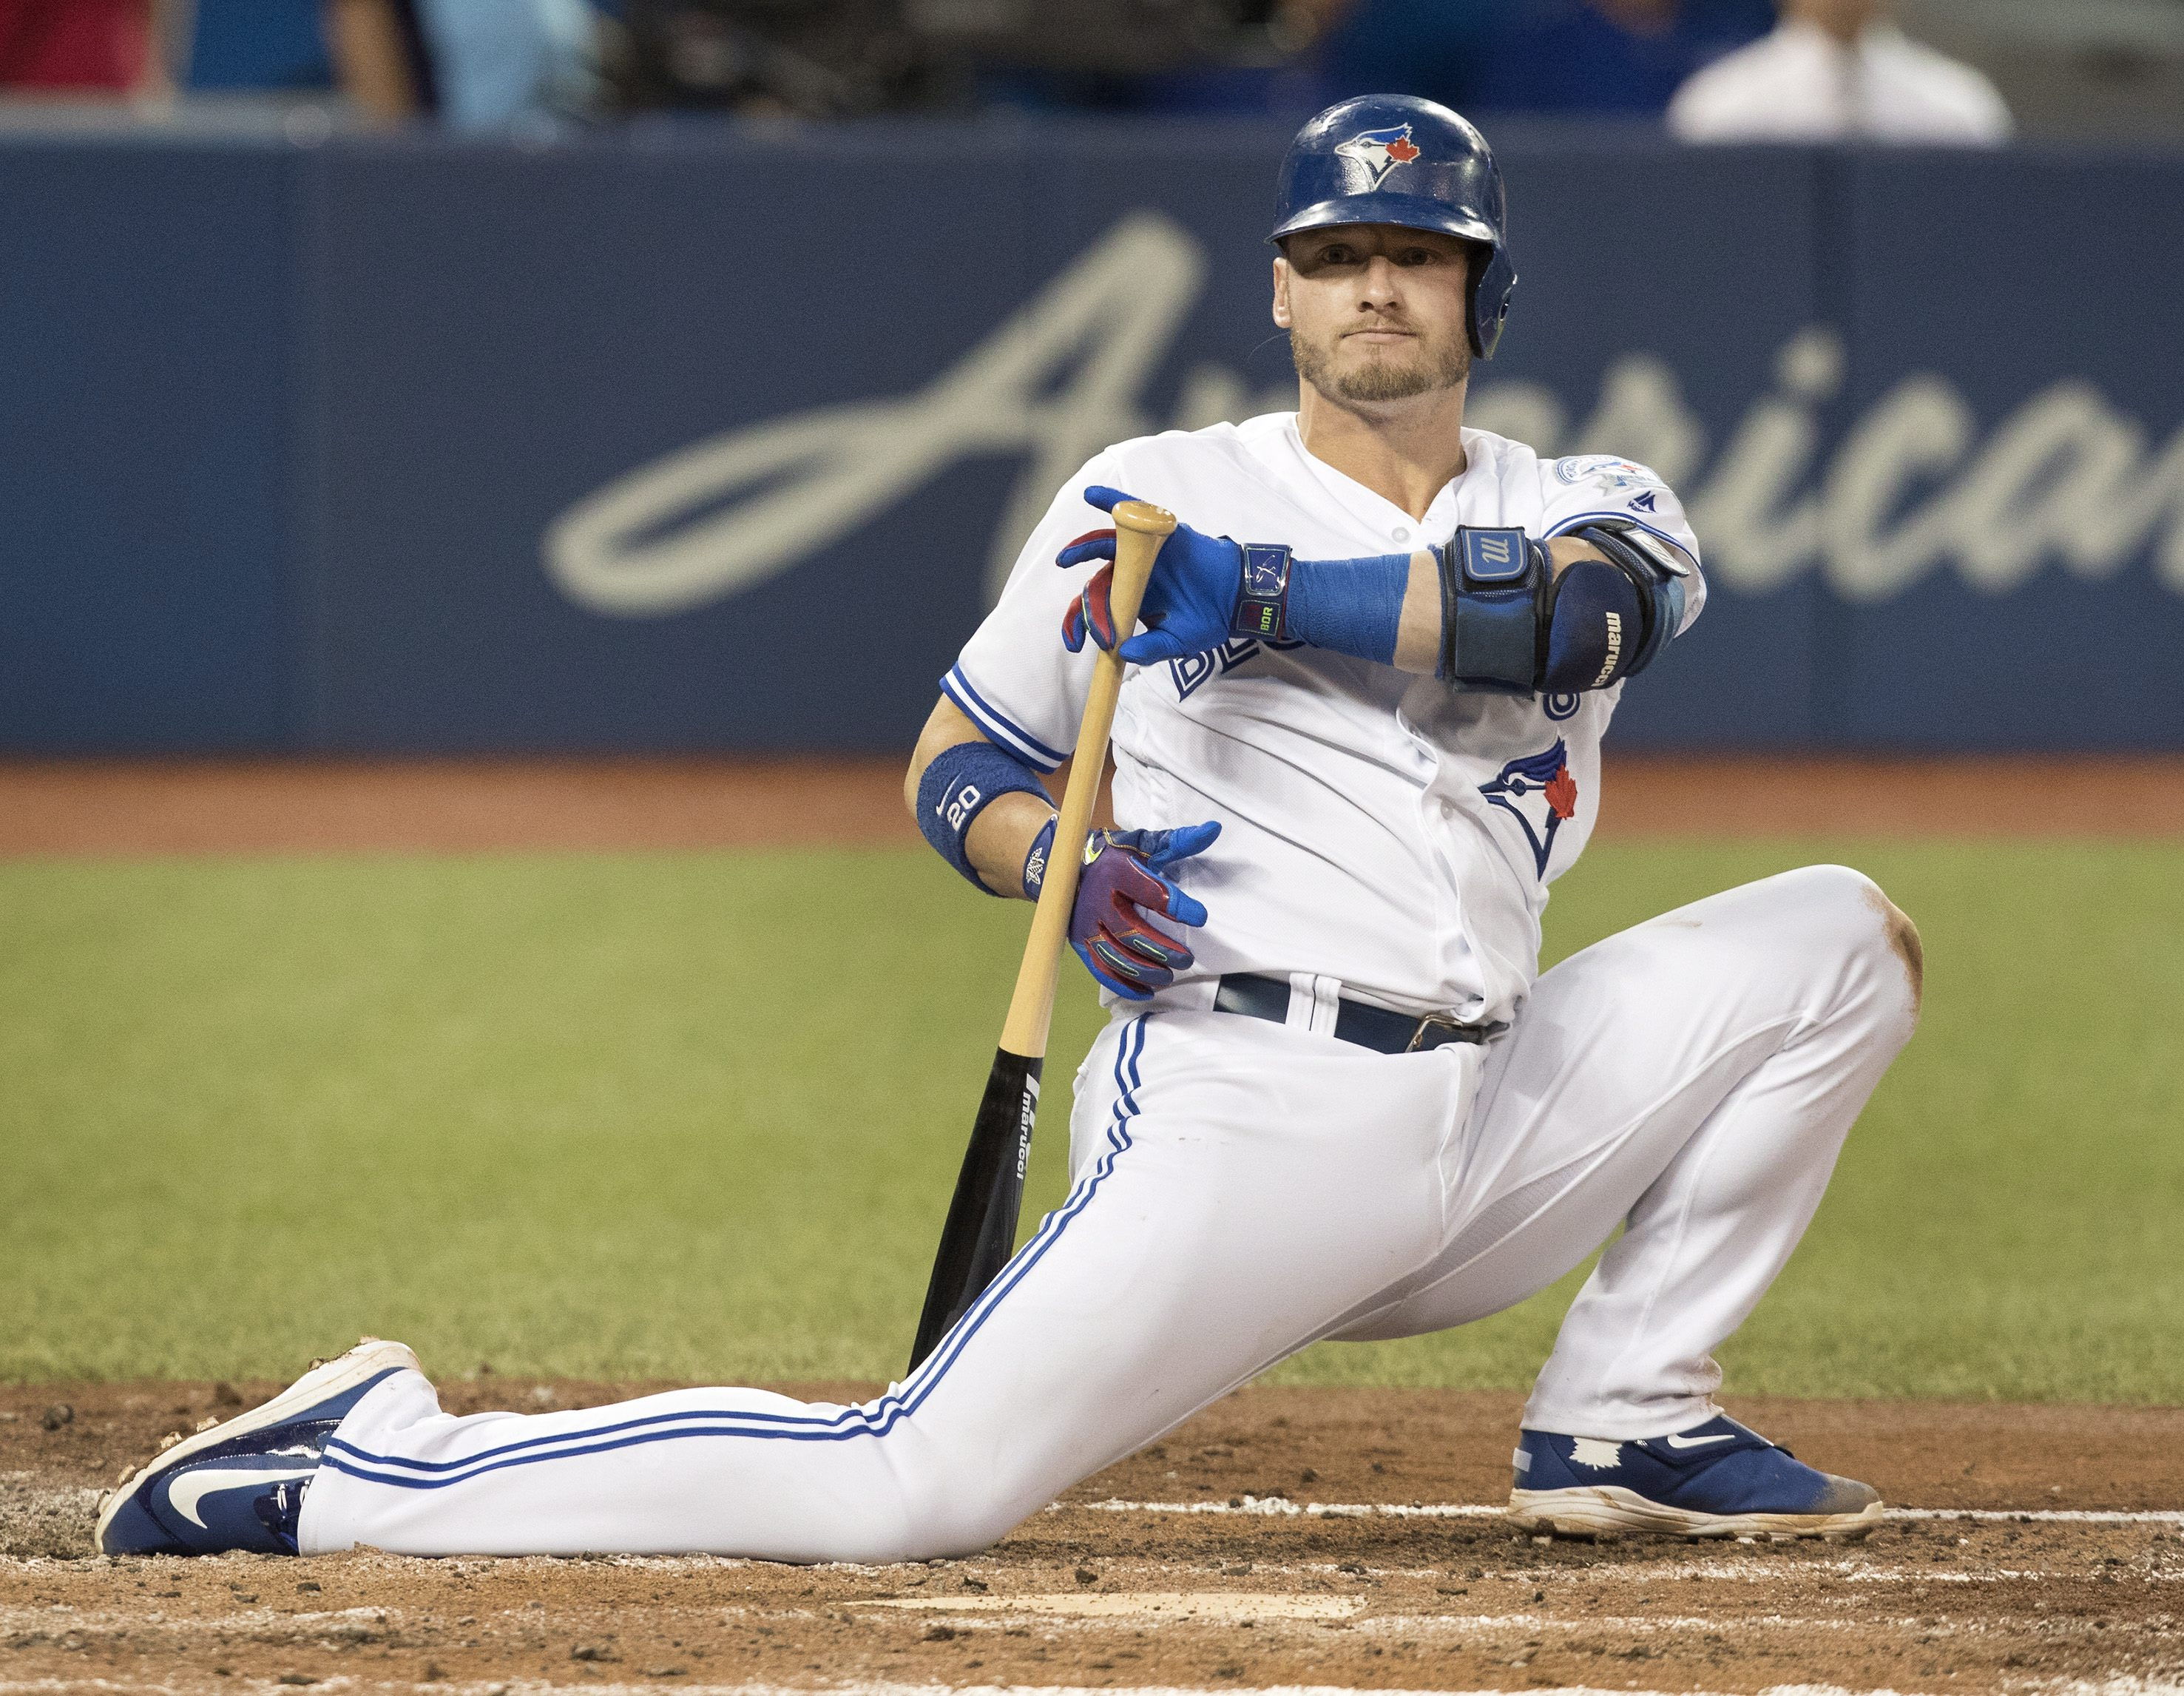 Toronto Blue Jays' Josh Donaldson drops to one knee after being backed off by a pitch in the fourth inning of their baseball game against the Tampa Bay Rays in Toronto on Monday, Aug. 8, 2016. (Fred Thornhill/The Canadian Press via AP)